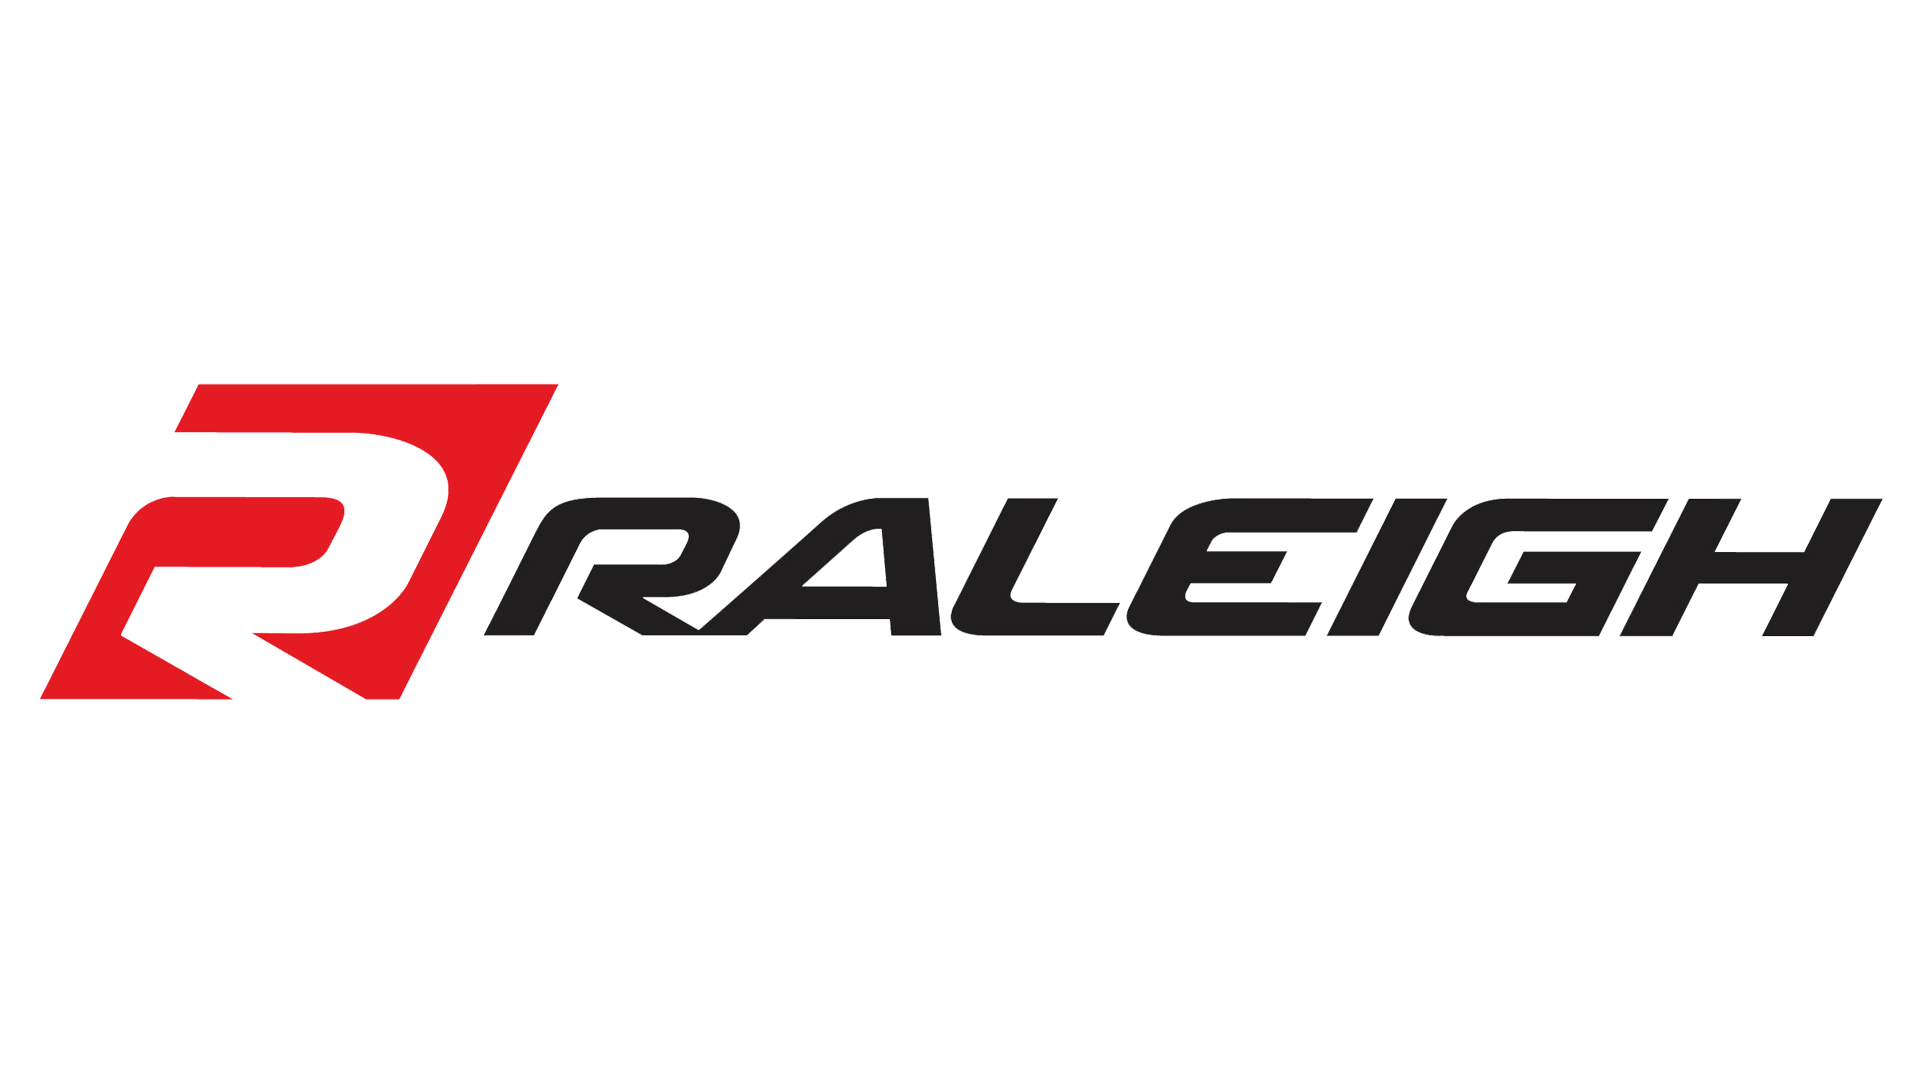 Information about the company Raleigh bikes